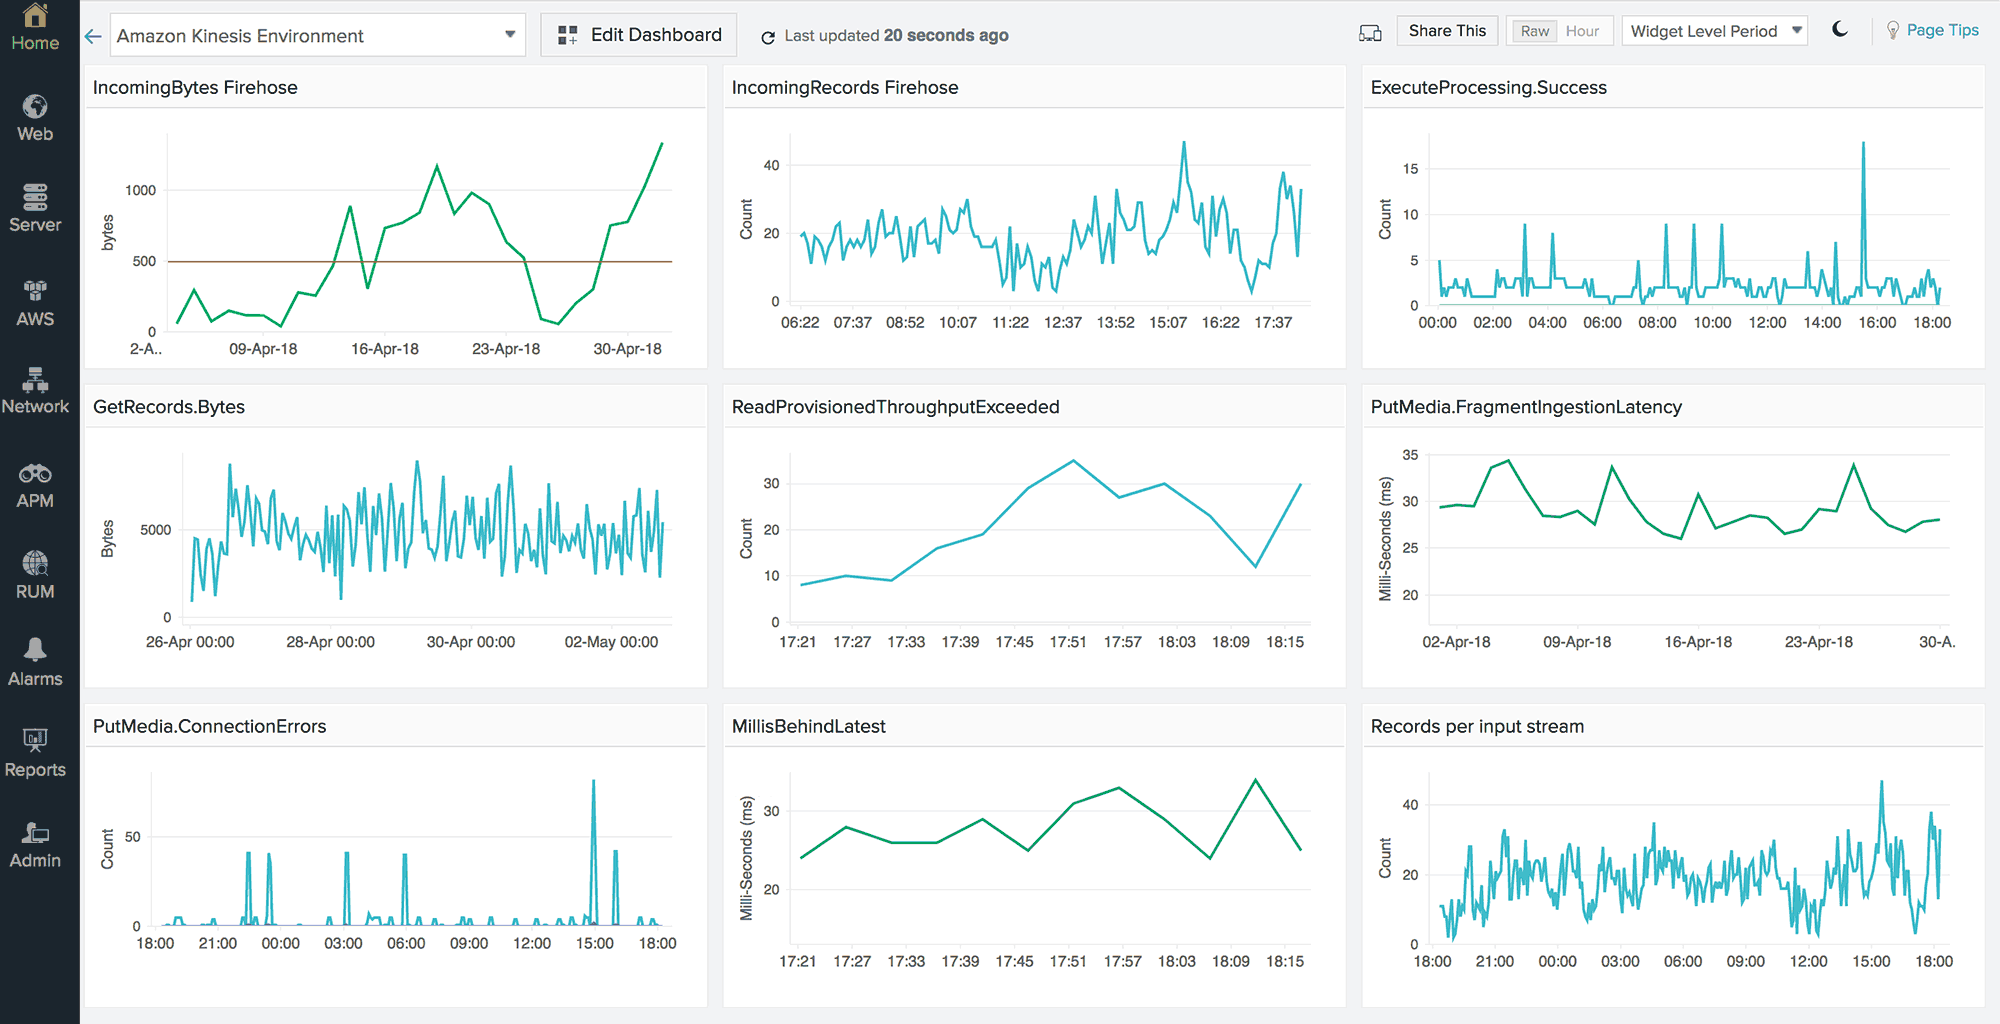 A dashboard displaying multiple time series charts for various Amazon Kinesis metrics